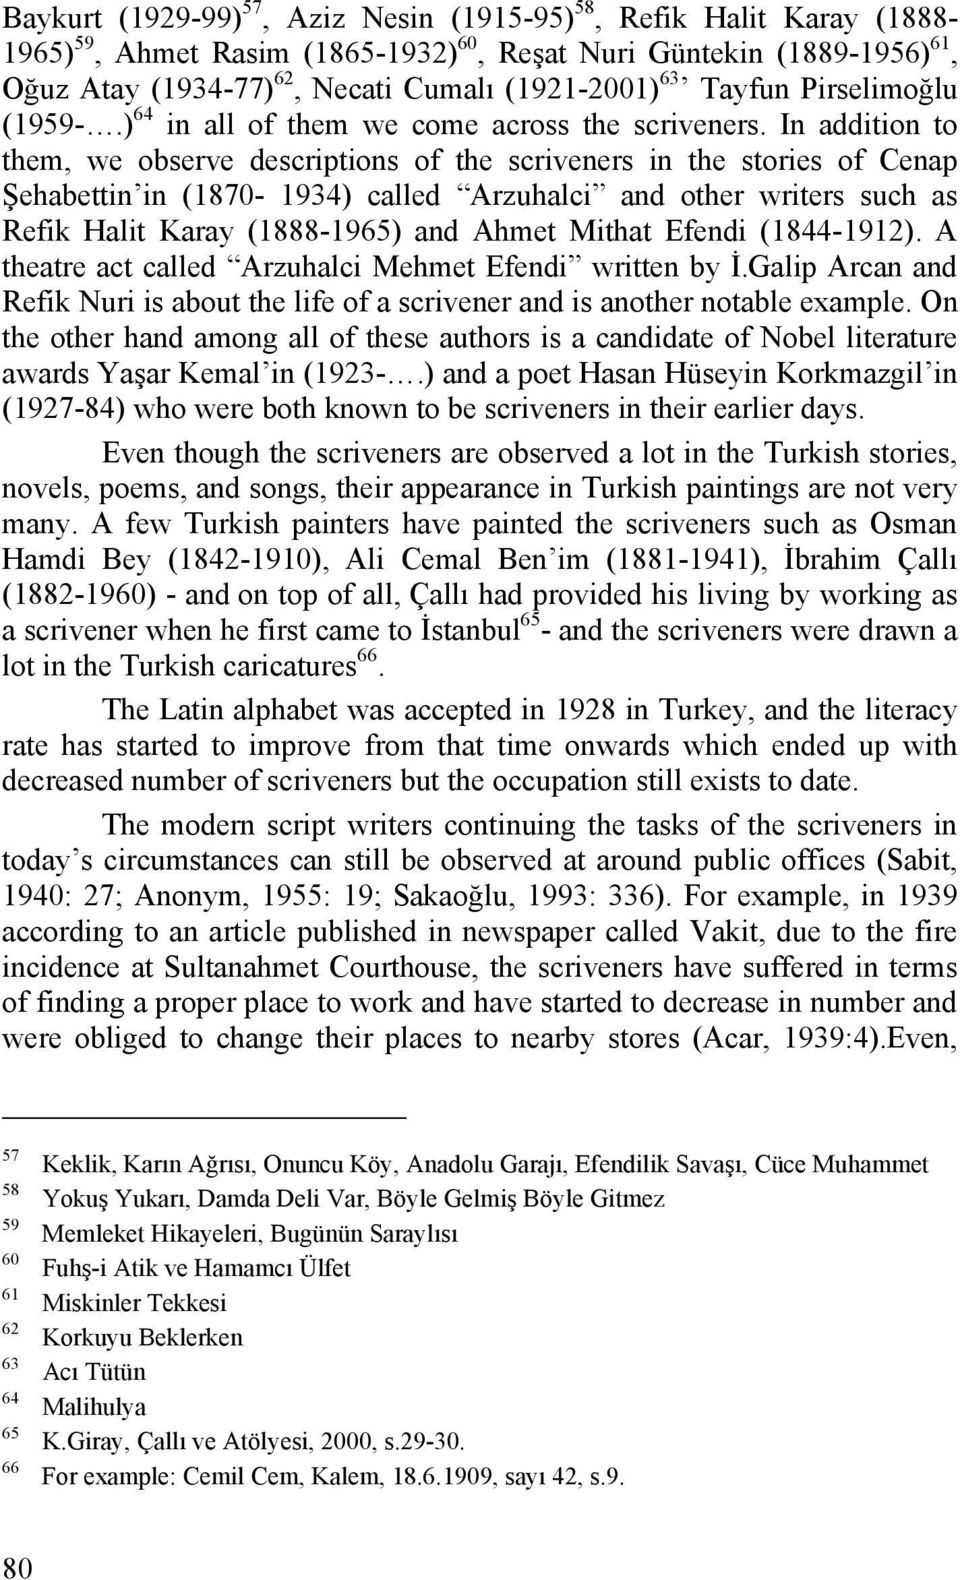 In addition to them, we observe descriptions of the scriveners in the stories of Cenap Şehabettin in (1870-1934) called Arzuhalci and other writers such as Refik Halit Karay (1888-1965) and Ahmet